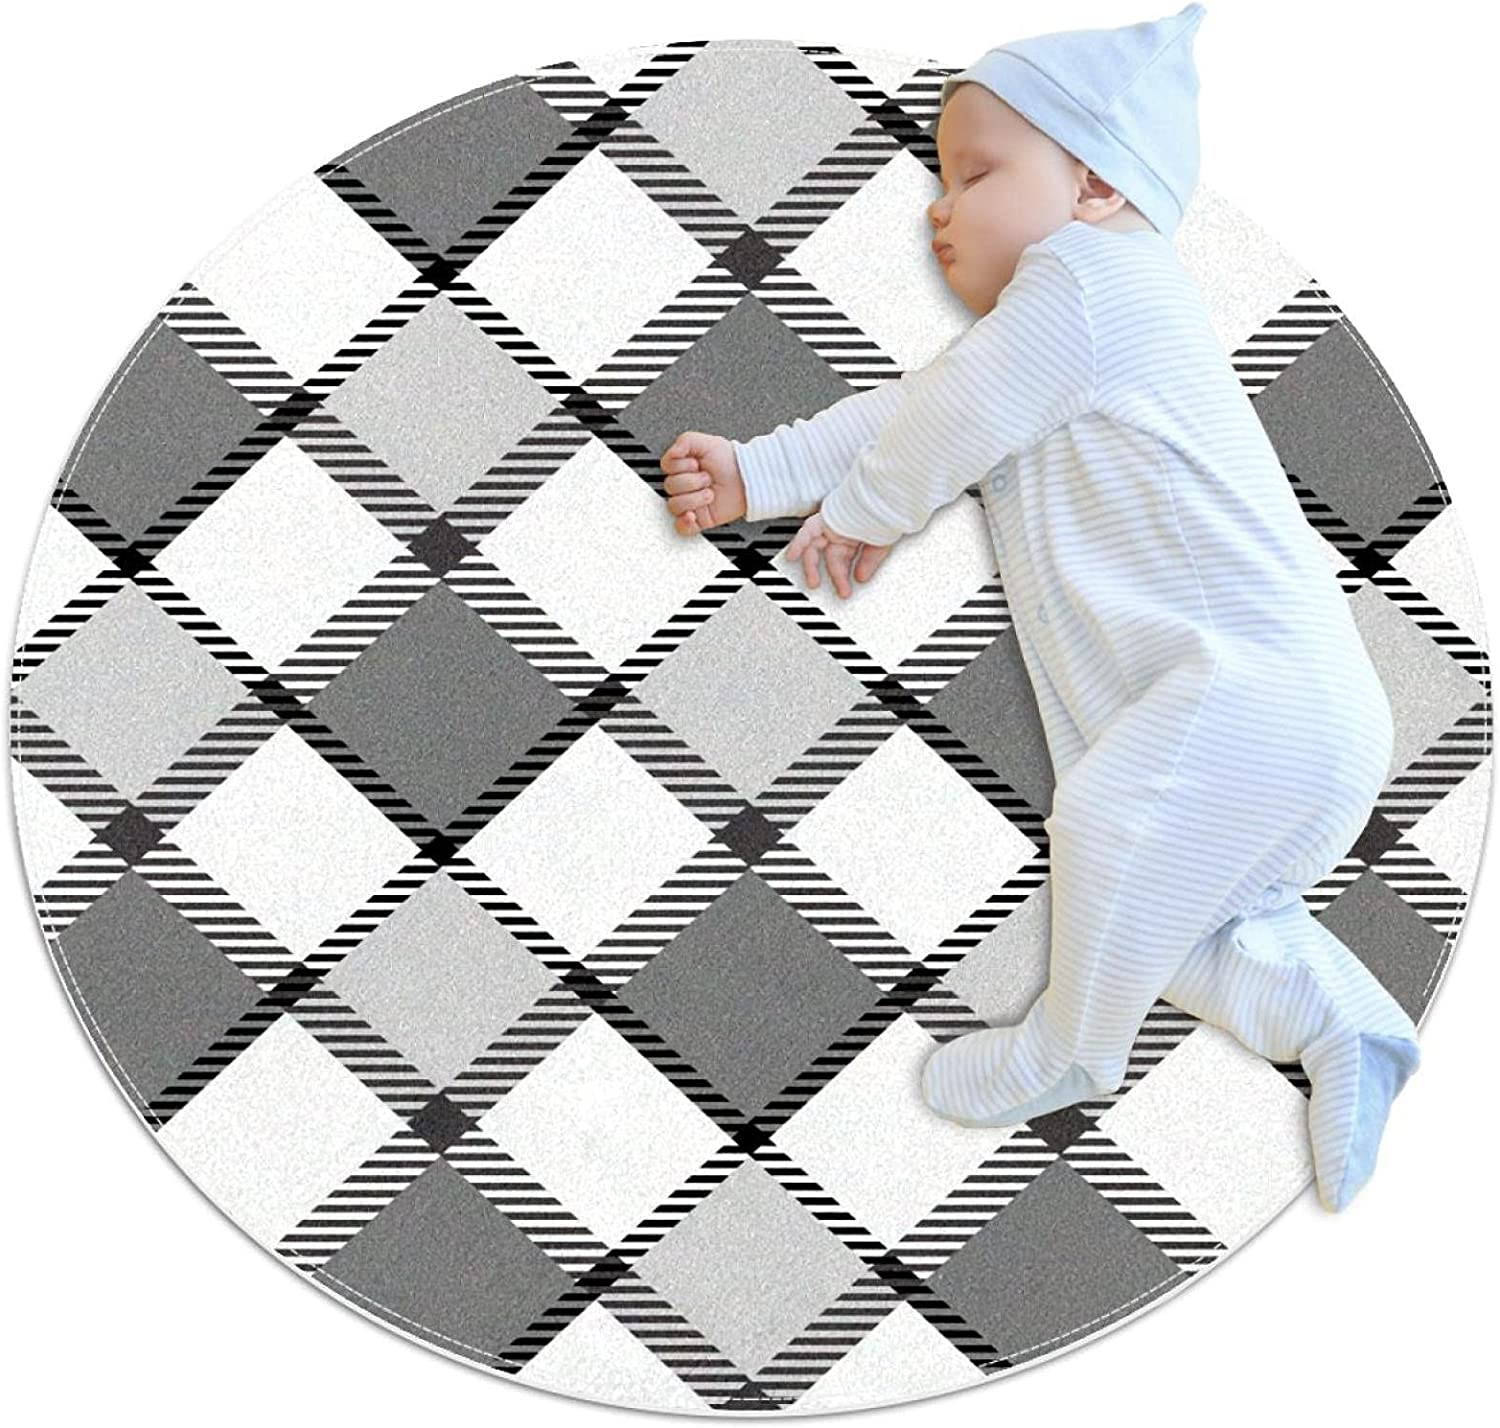 Plaid Fabric price All stores are sold Patterns UK Kids Round Blanket Game C Pattern